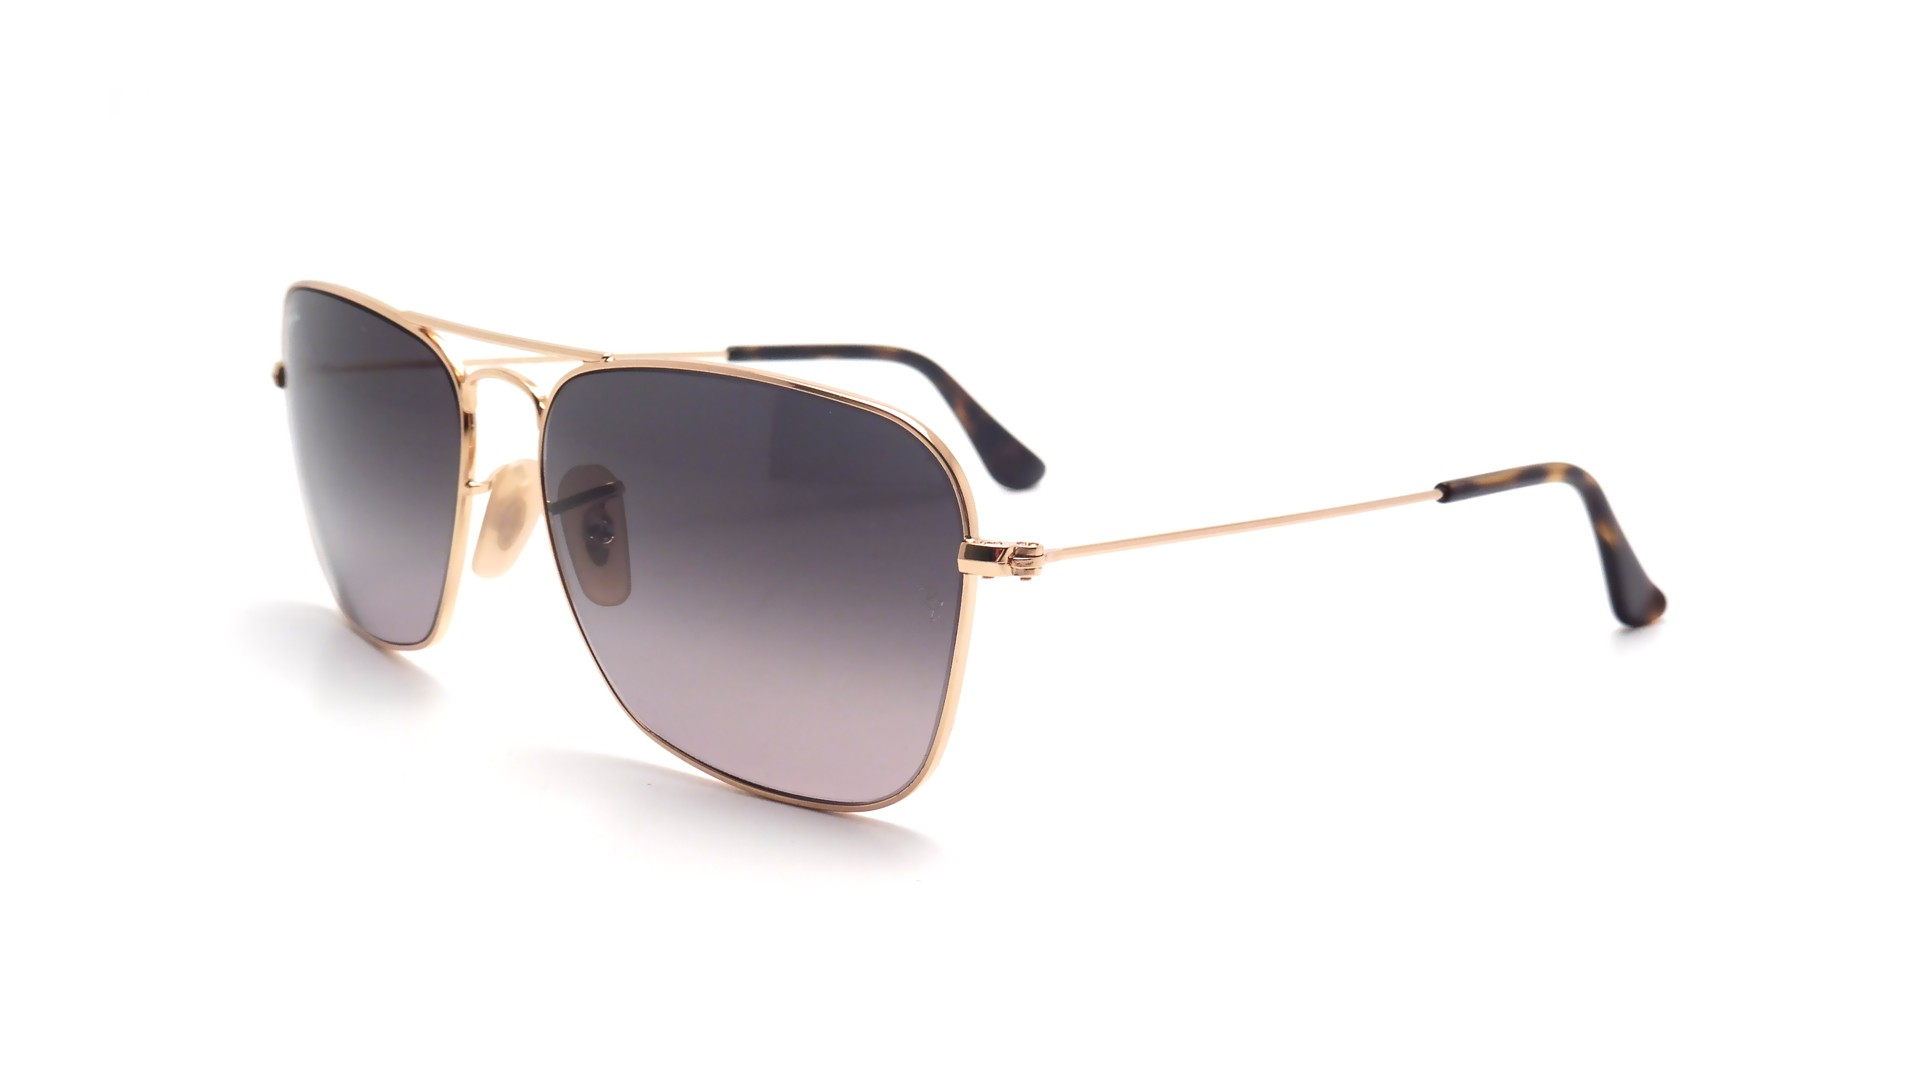 afc9d6adc80 Sunglasses Ray-Ban Caravan Gold RB3136 181 71 58-15 Large Gradient